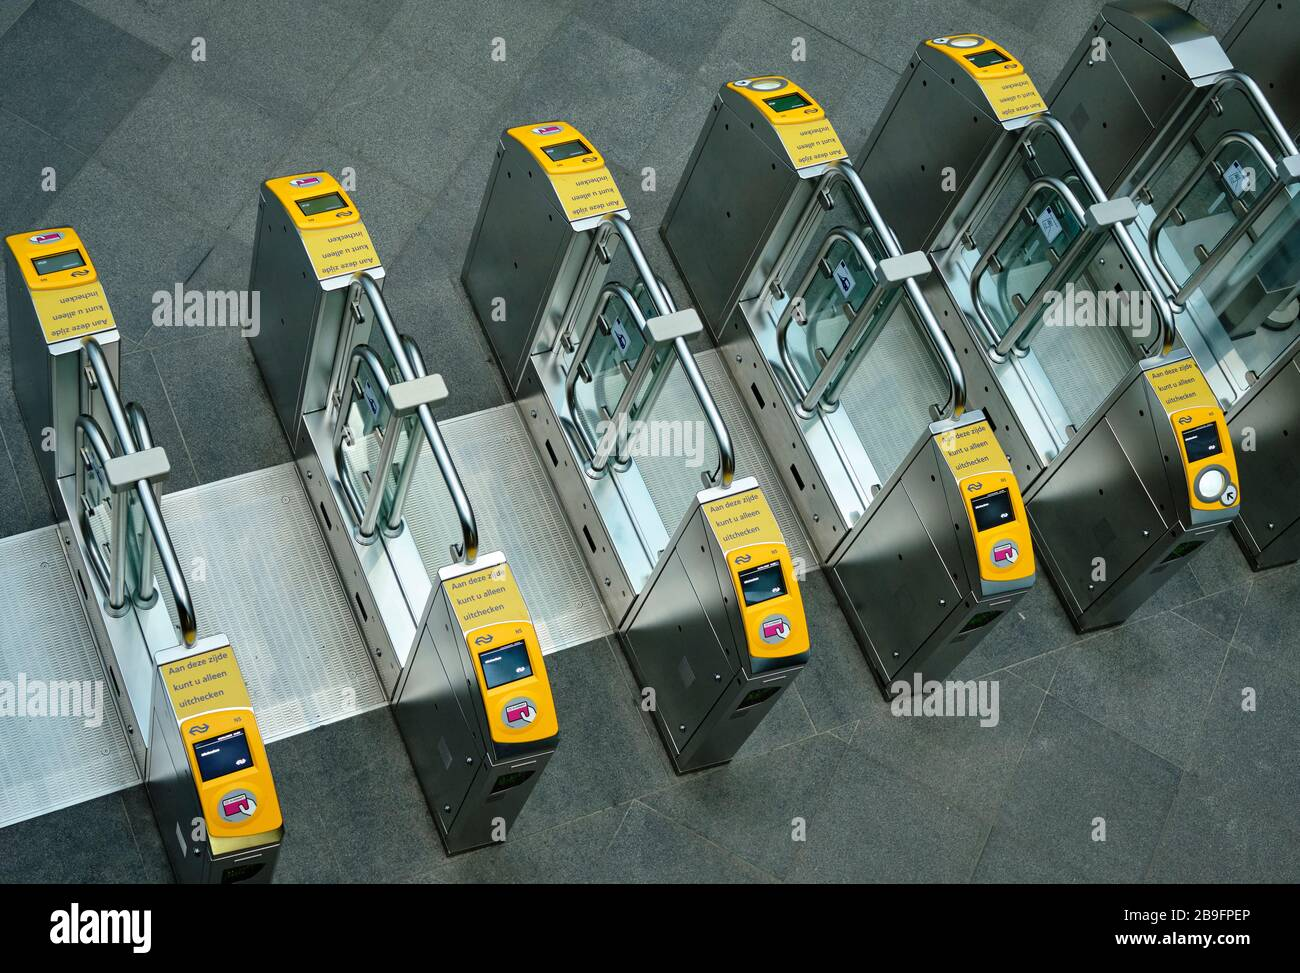 Acces gates where you can scan your card to get to the public transport facilities. Stock Photo